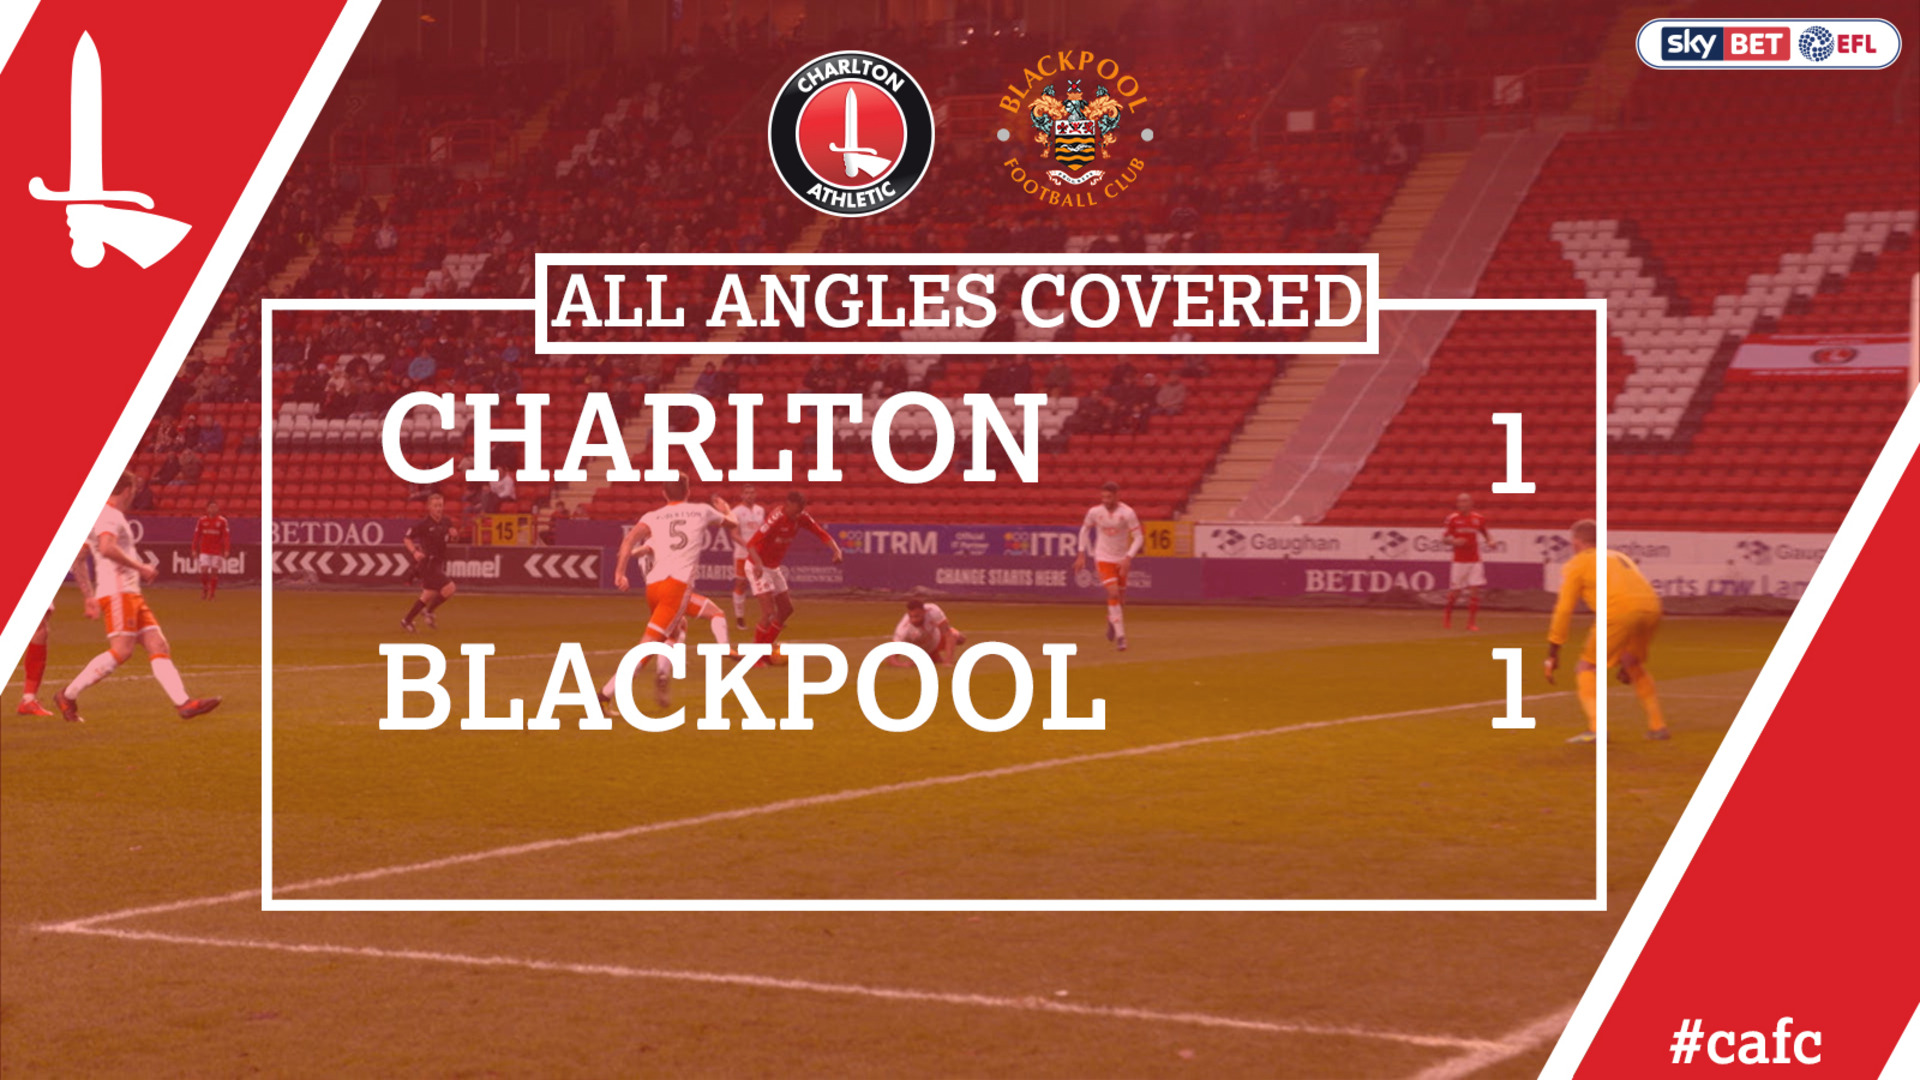 ALL ANGLES COVERED | Charlton 1 Blackpool 1